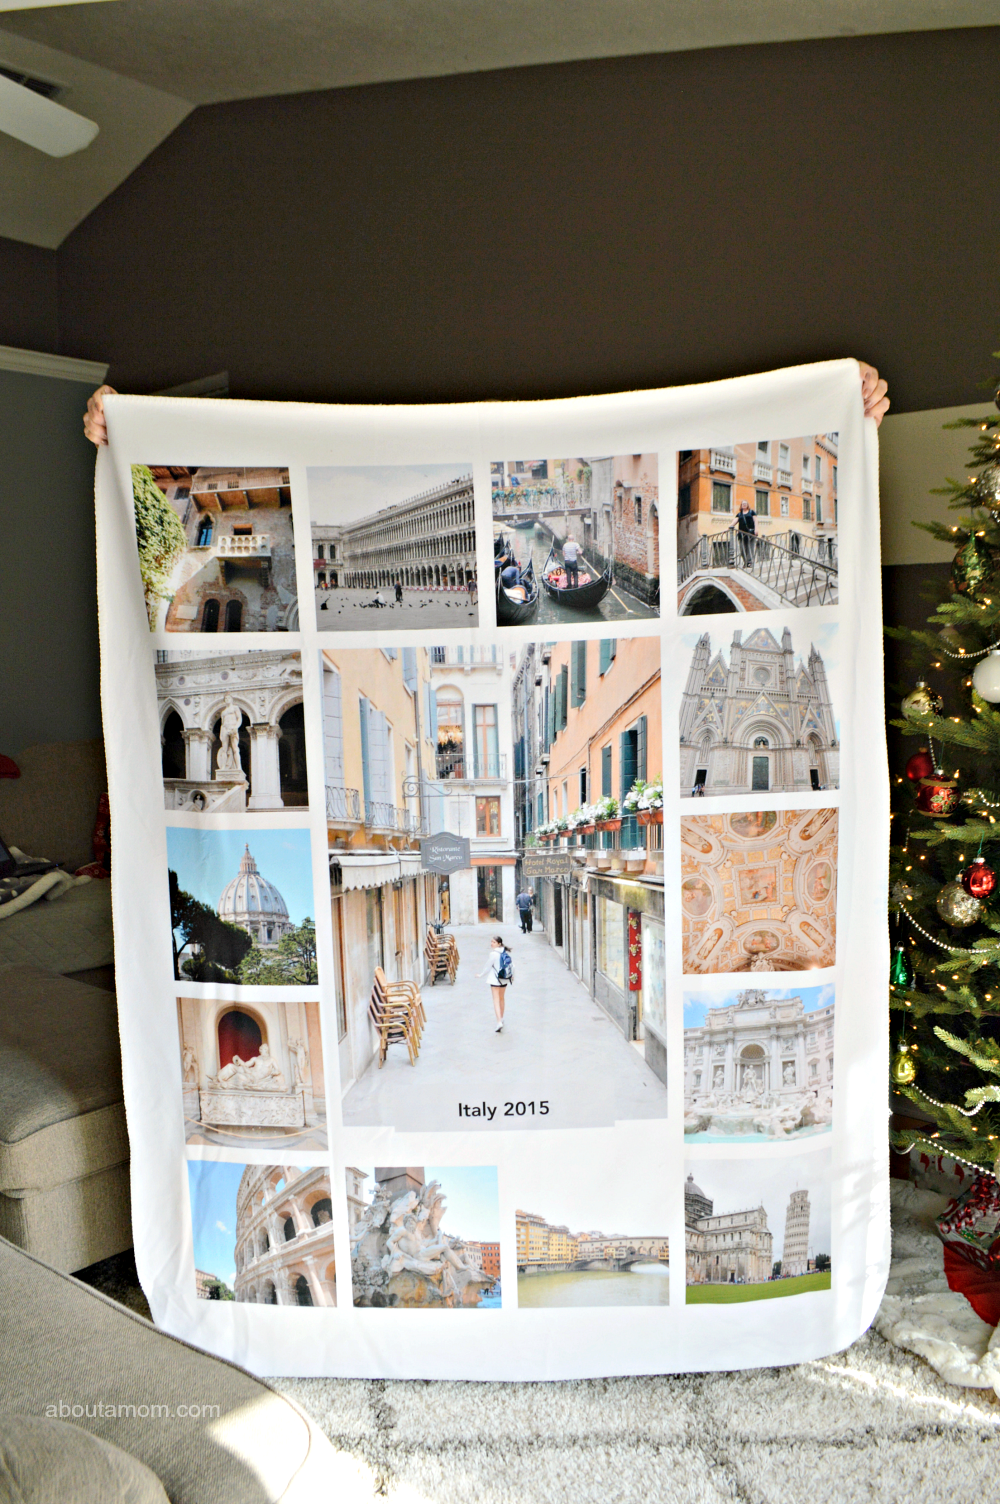 Stay cozy and warm when you create a personalized photo blanket from Collage.com. Photo blankets make great gifts for friends and family.